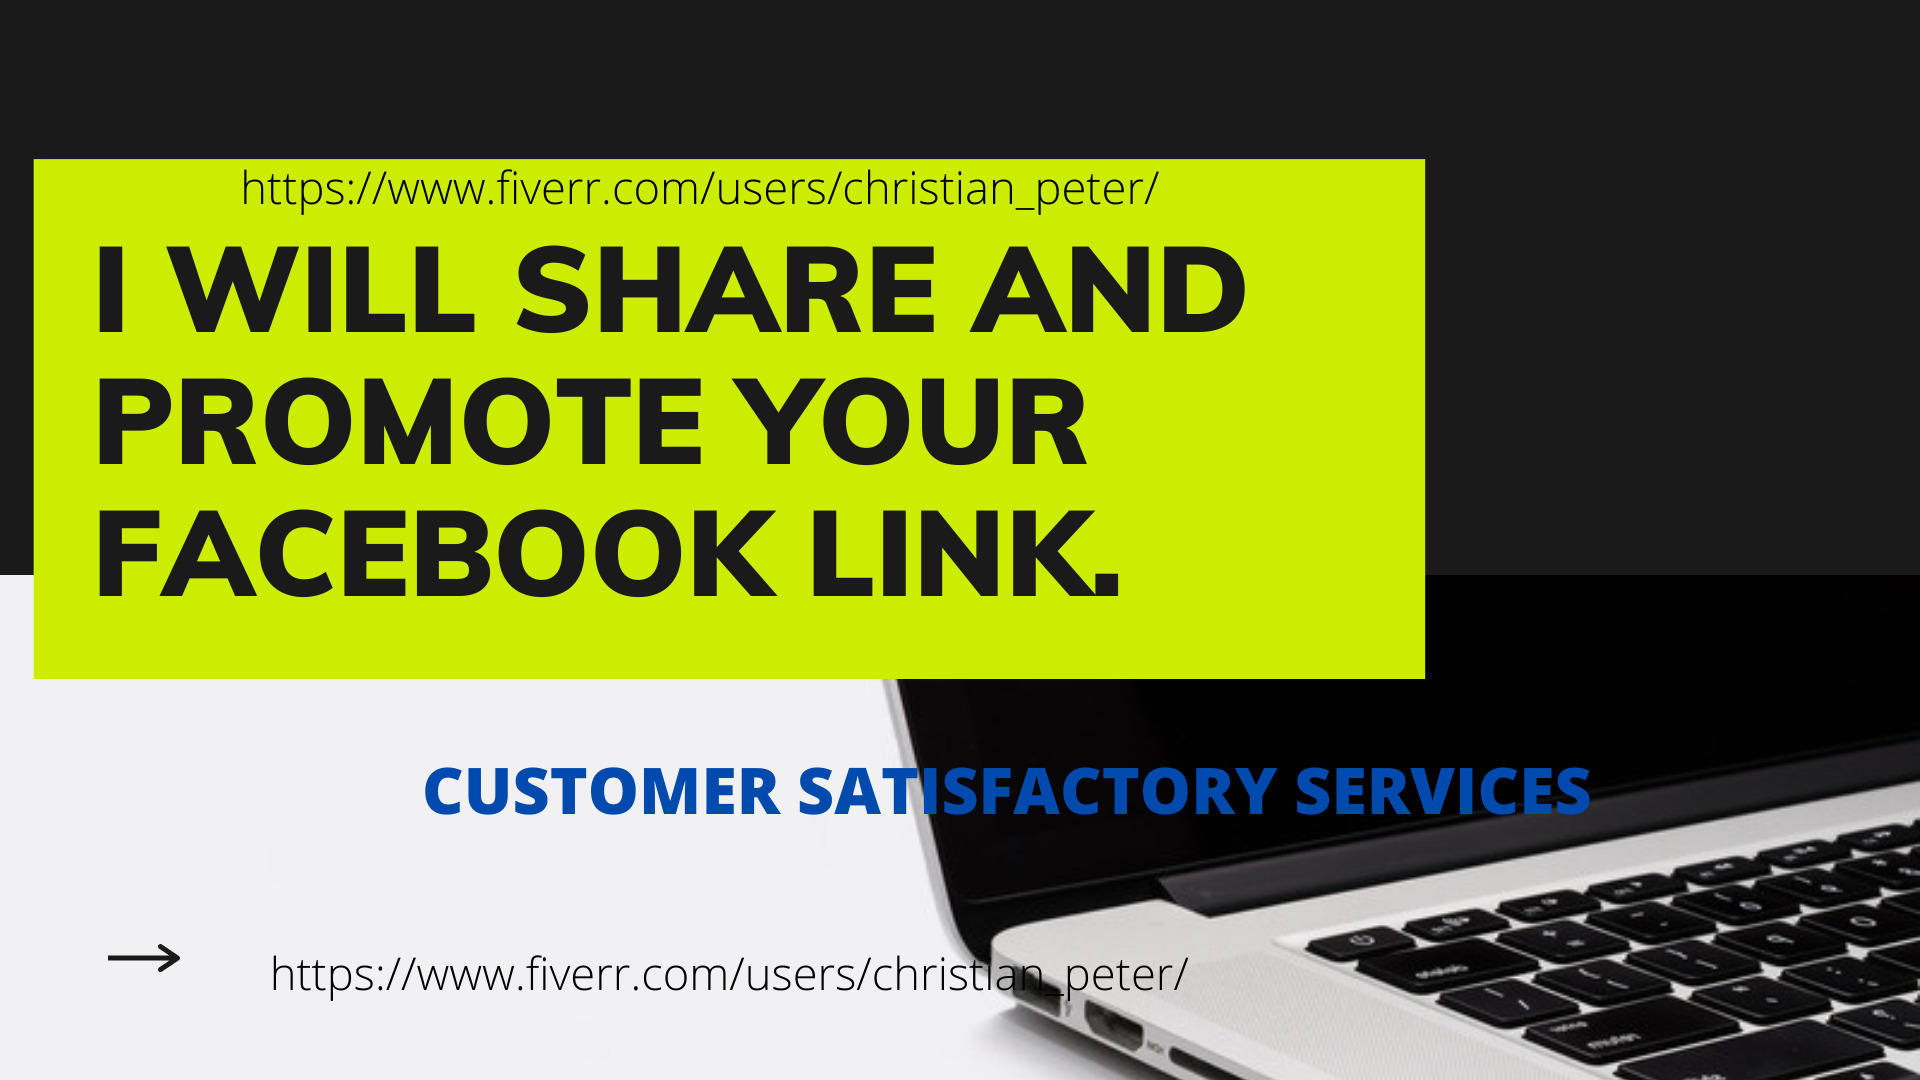 I will share and promote your link to 100k facebook audience, FiverrBox